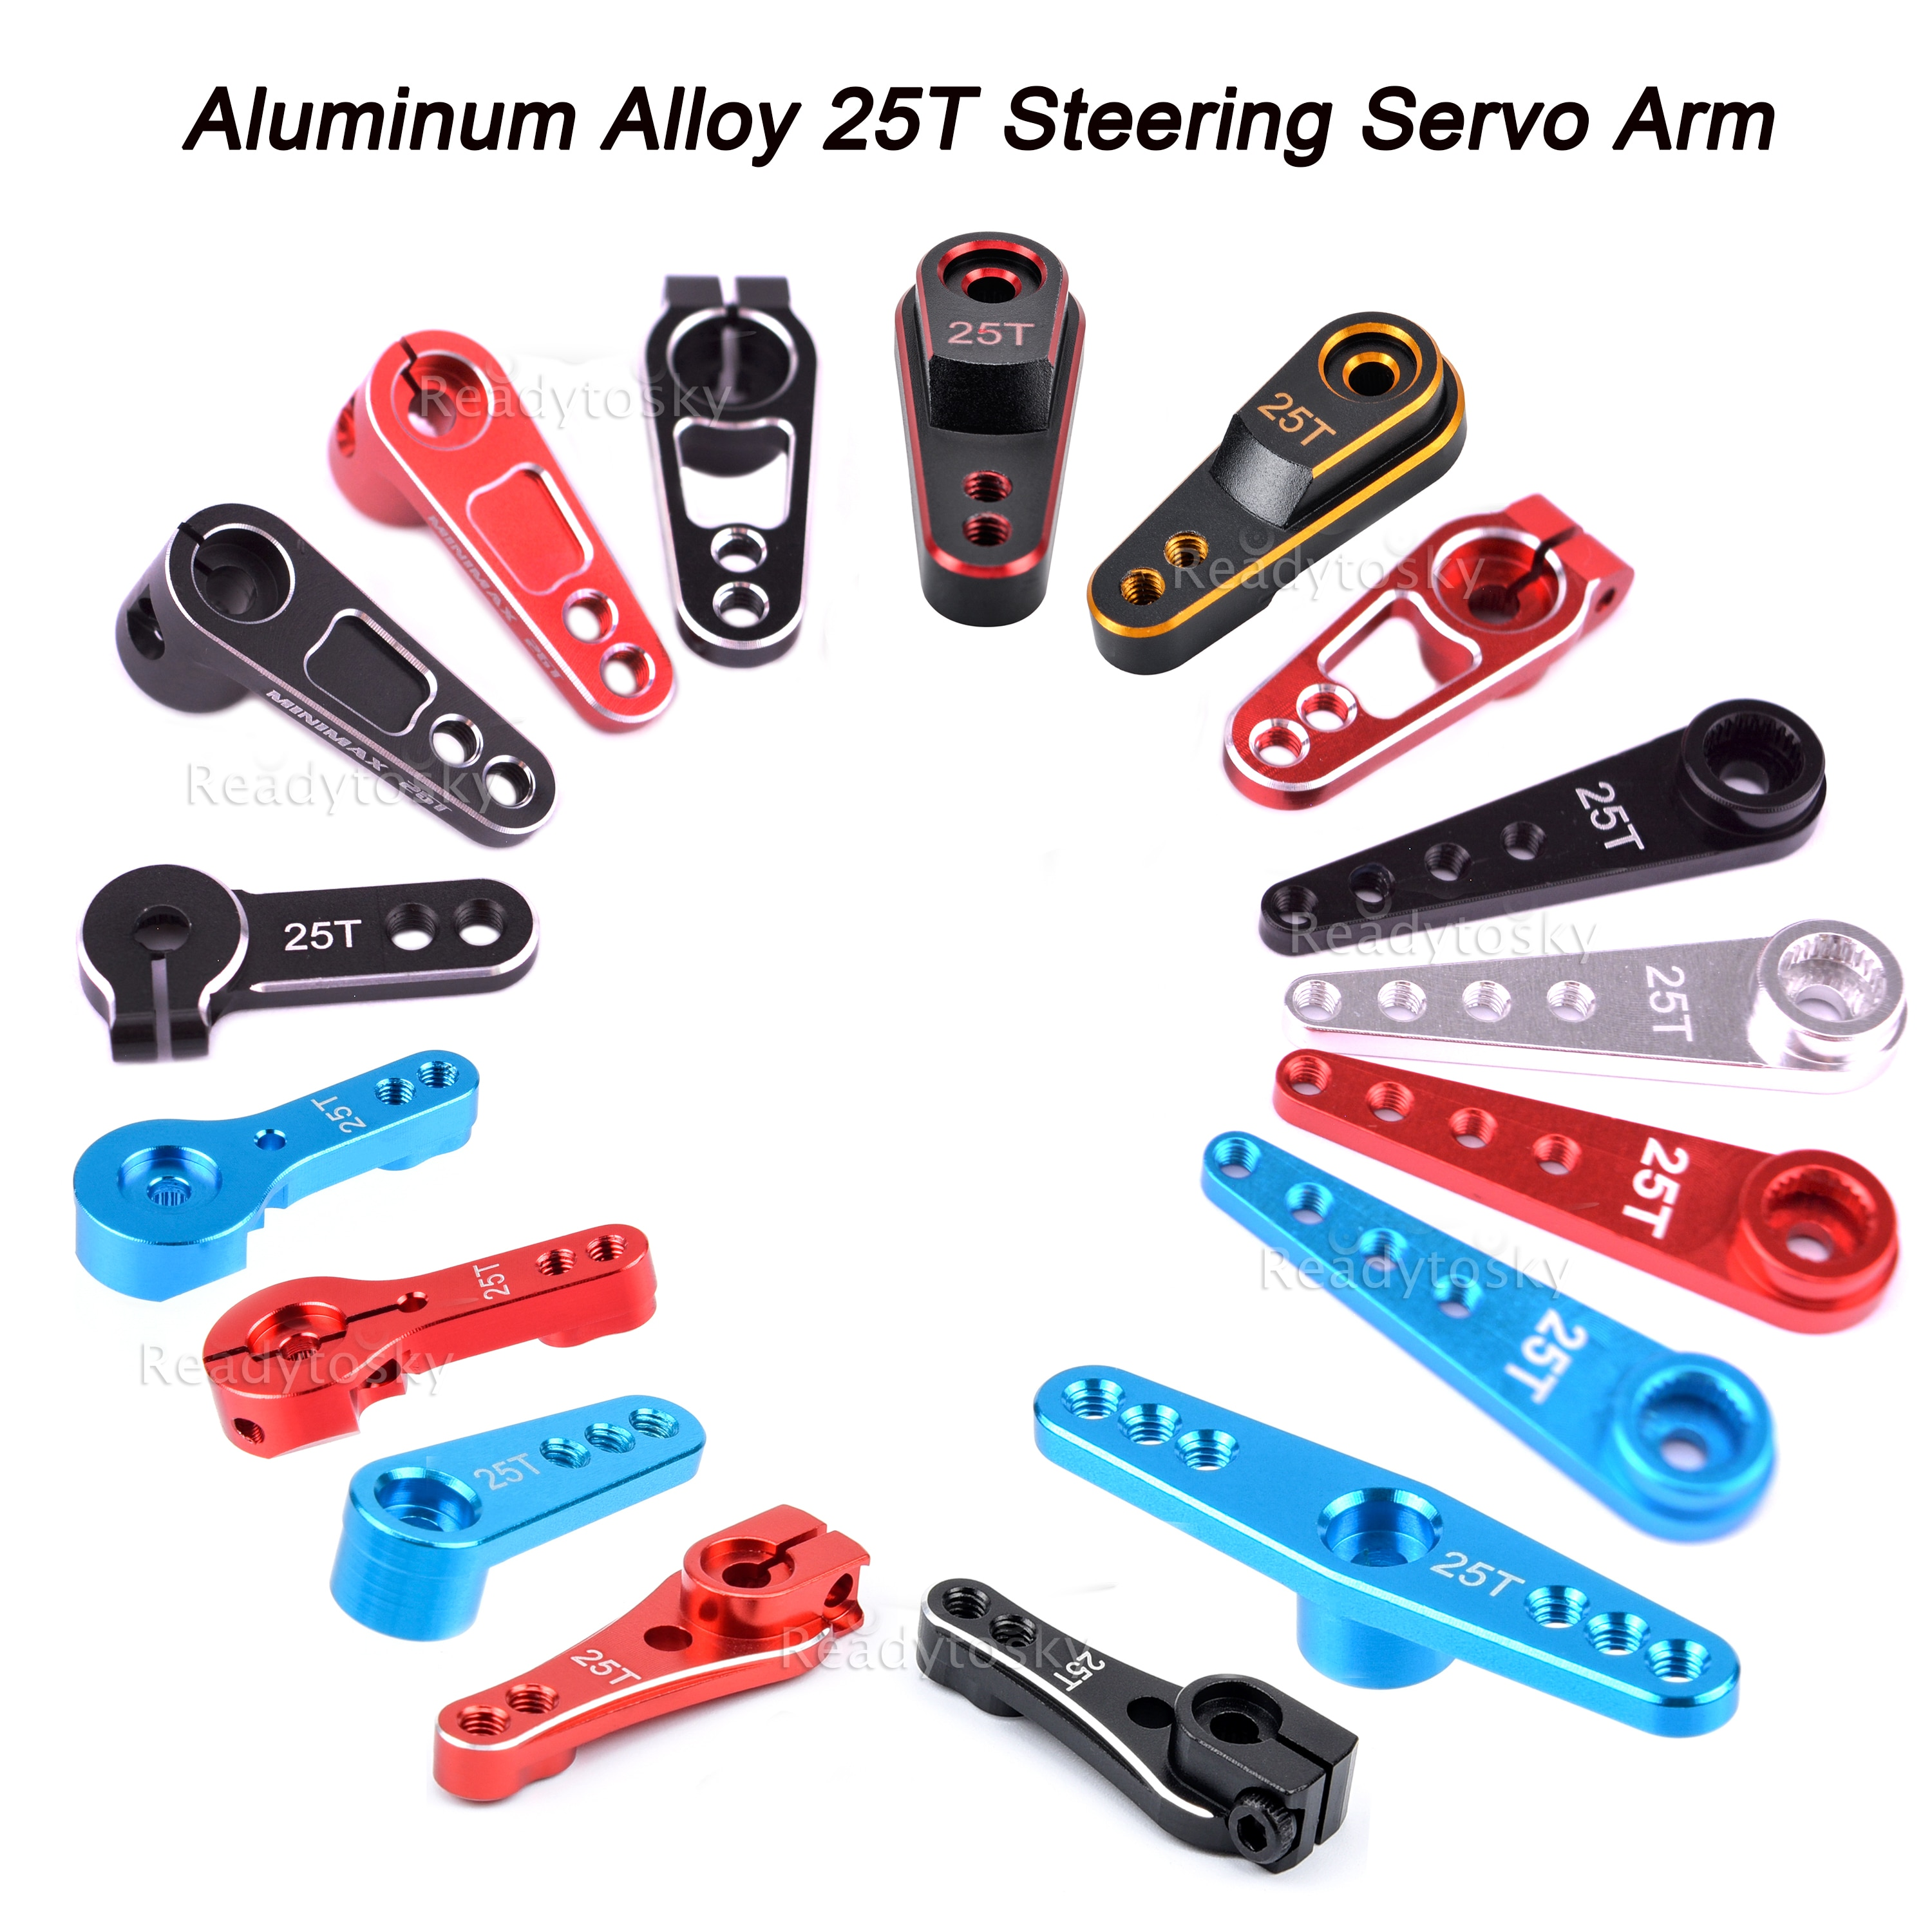 Aluminum Alloy 25T Steering Servo Arm Horn Black/Red/Blue Color for RC Car Crawler Large Torque Digi